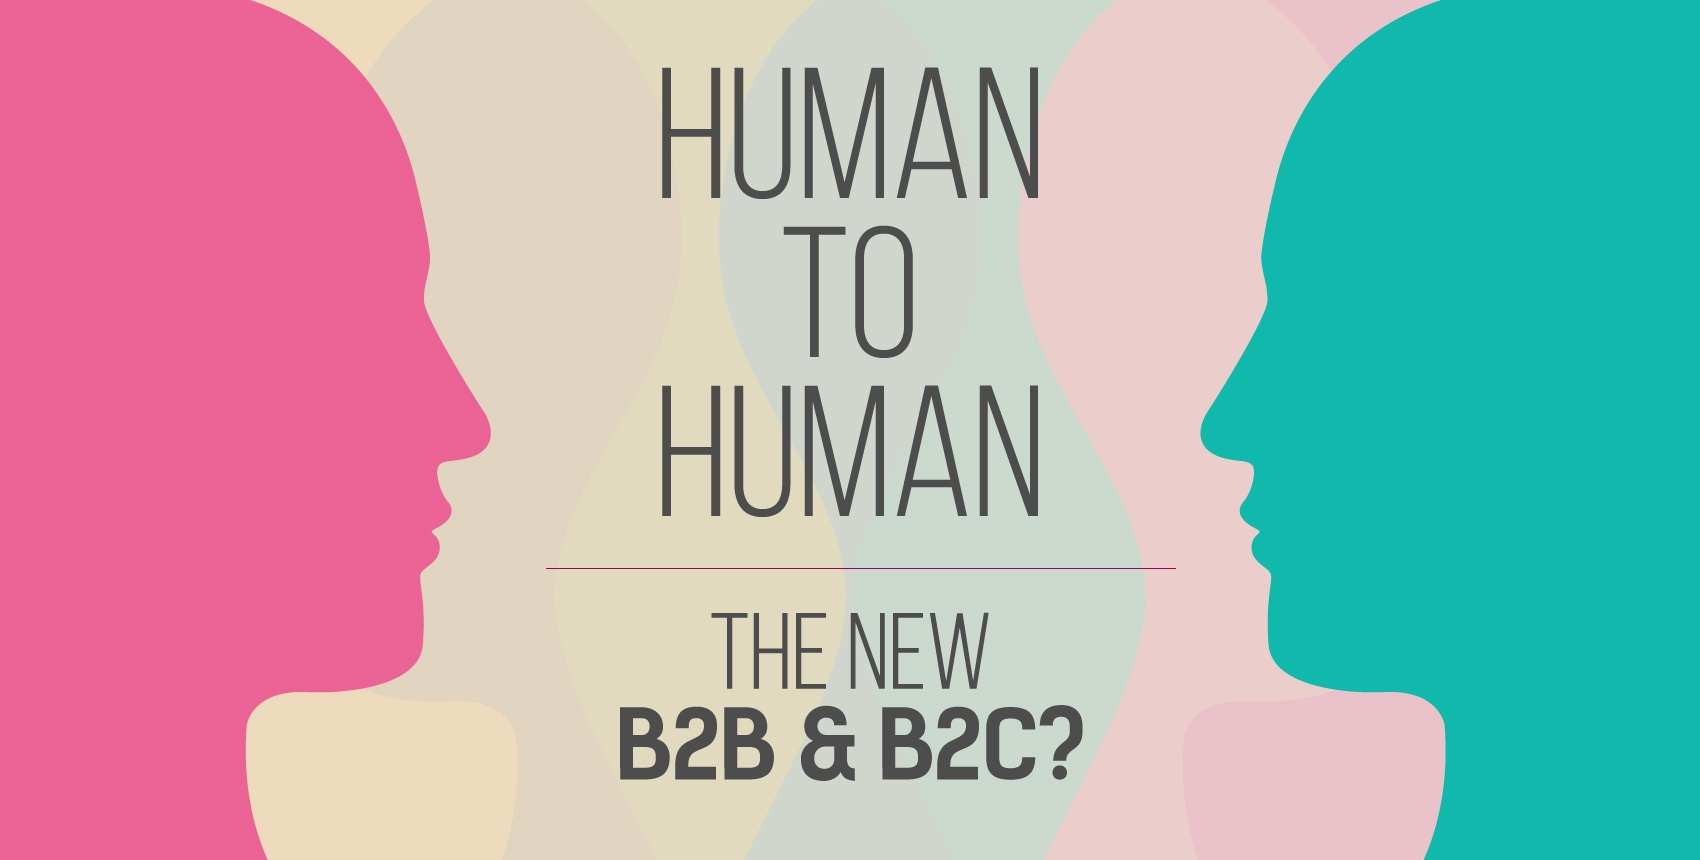 jbh-human-to-human-marketing-1